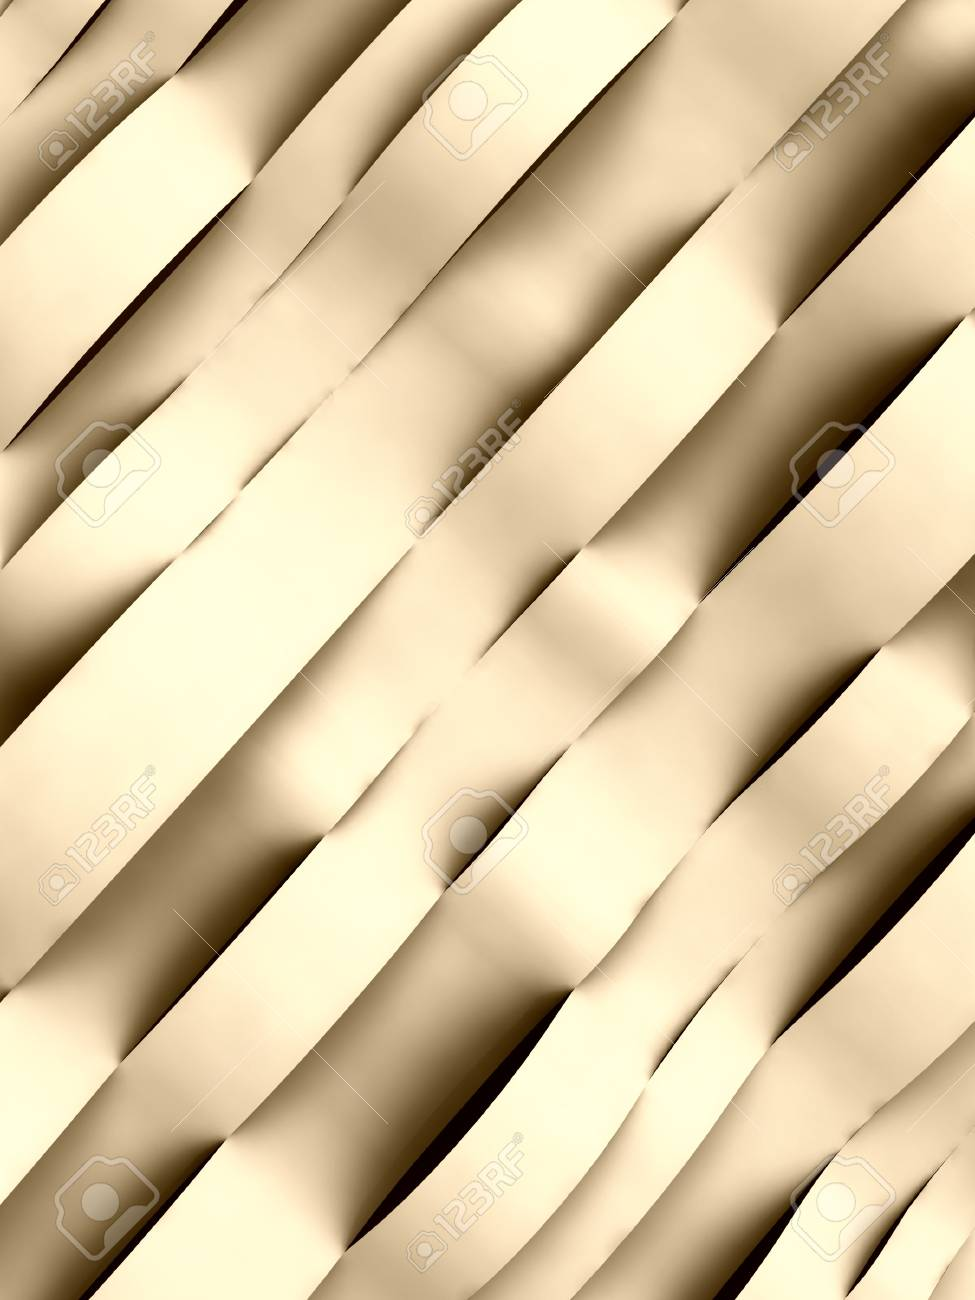 diagonally wave sepia alighted abstract cool surface card background illustration Stock Illustration - 15793438